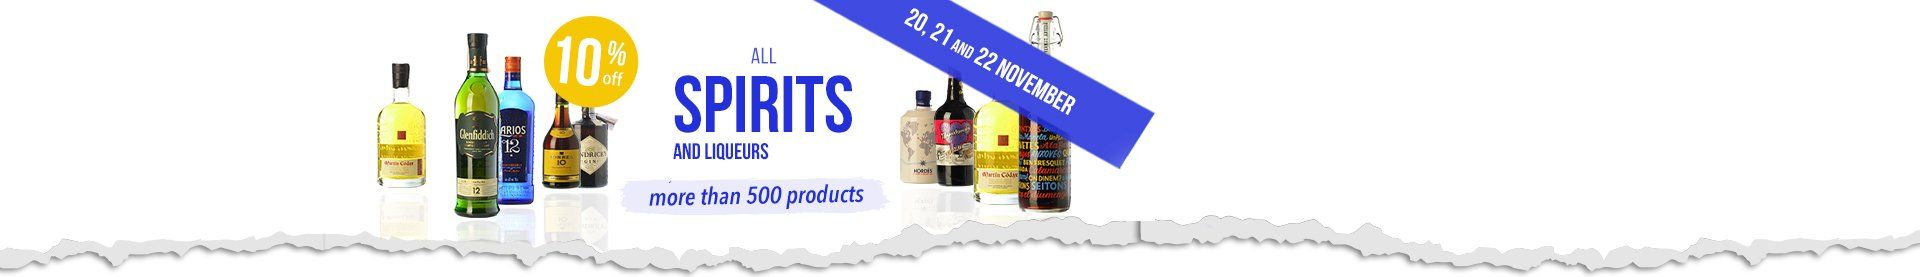 10% off ALL Spirits